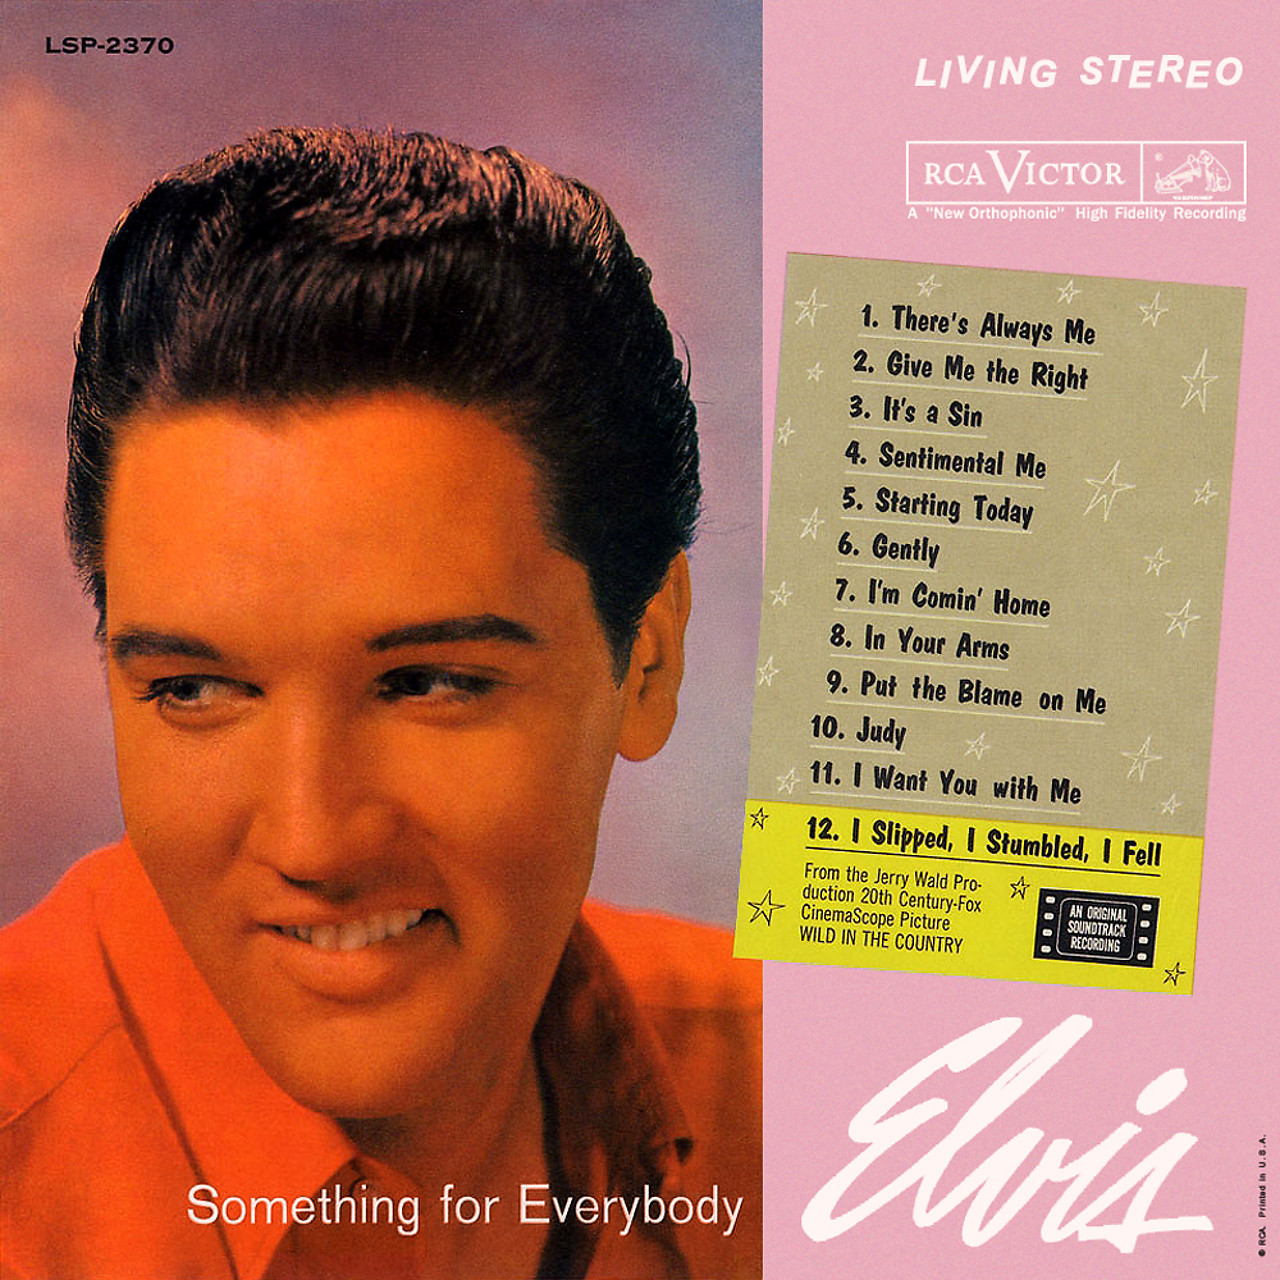 Something for Everybody by Elvis Presley | Arena Music